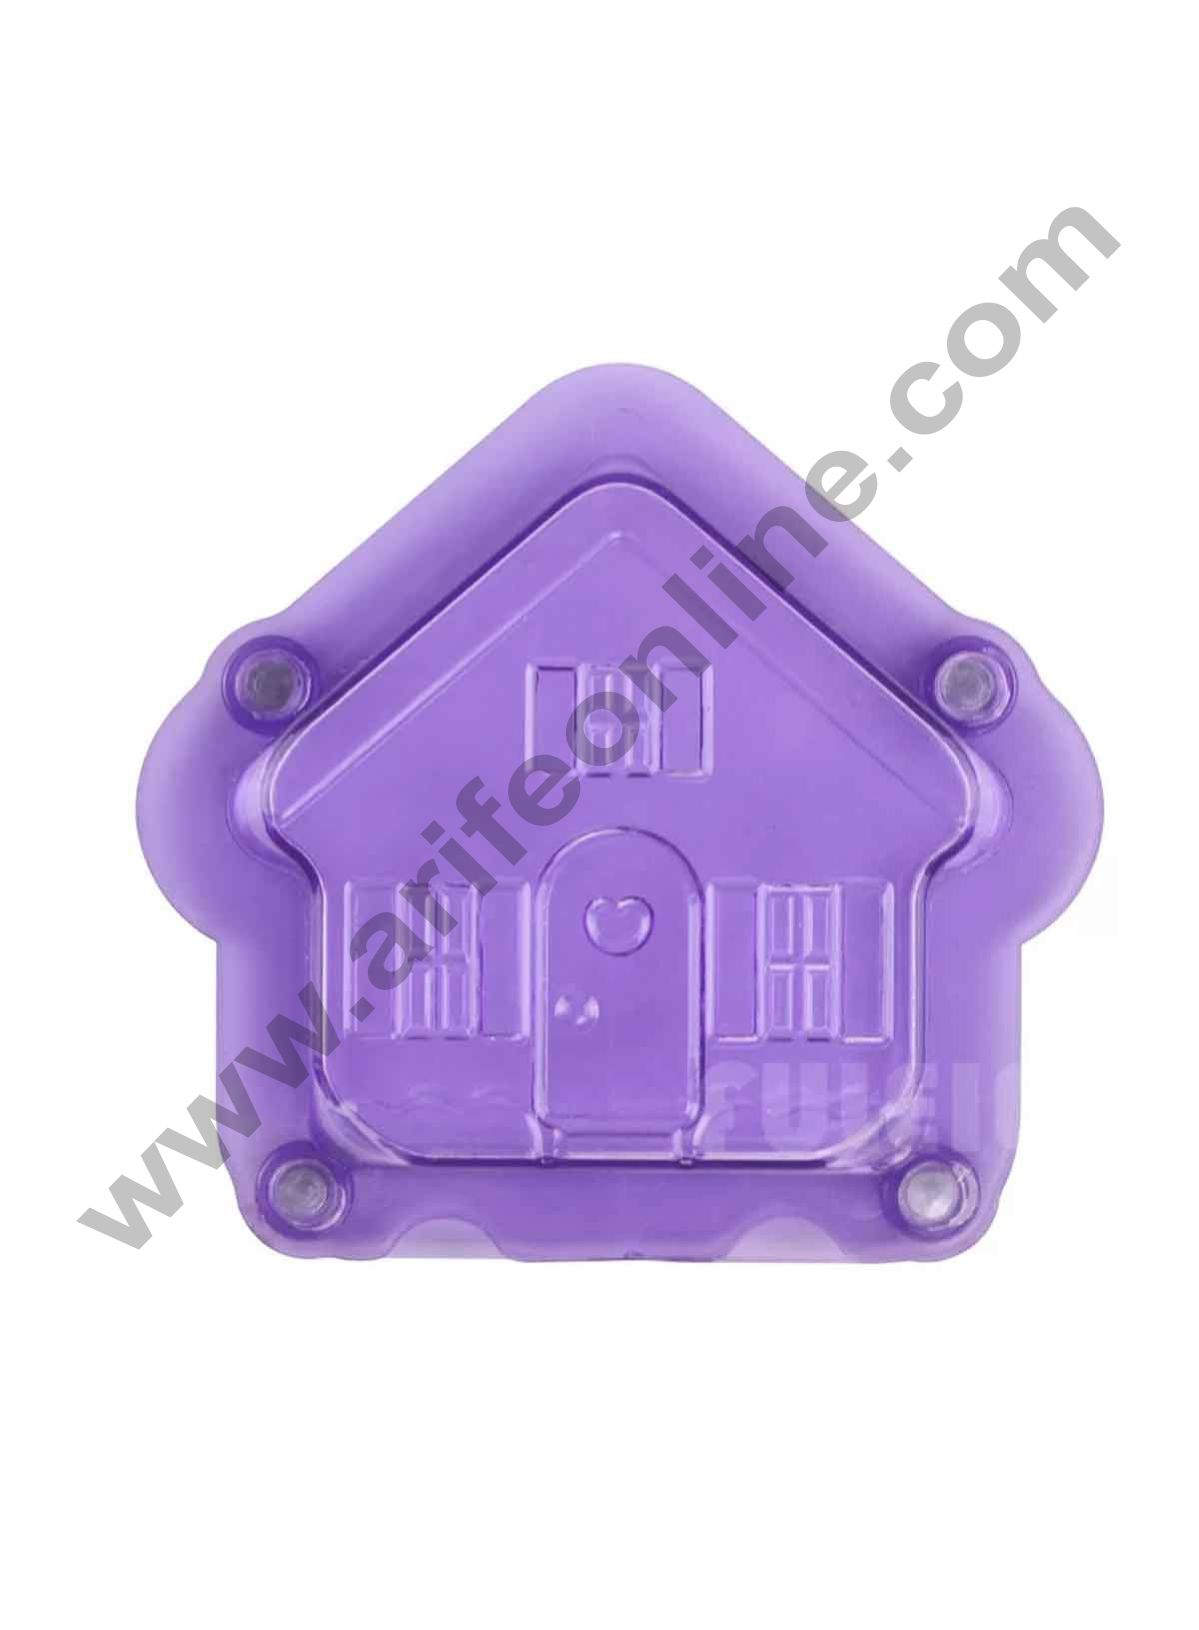 Cake Decor Polycarbonate 3D House Home Chocolate Mold Cake Decorating Chocolate Mould Tools